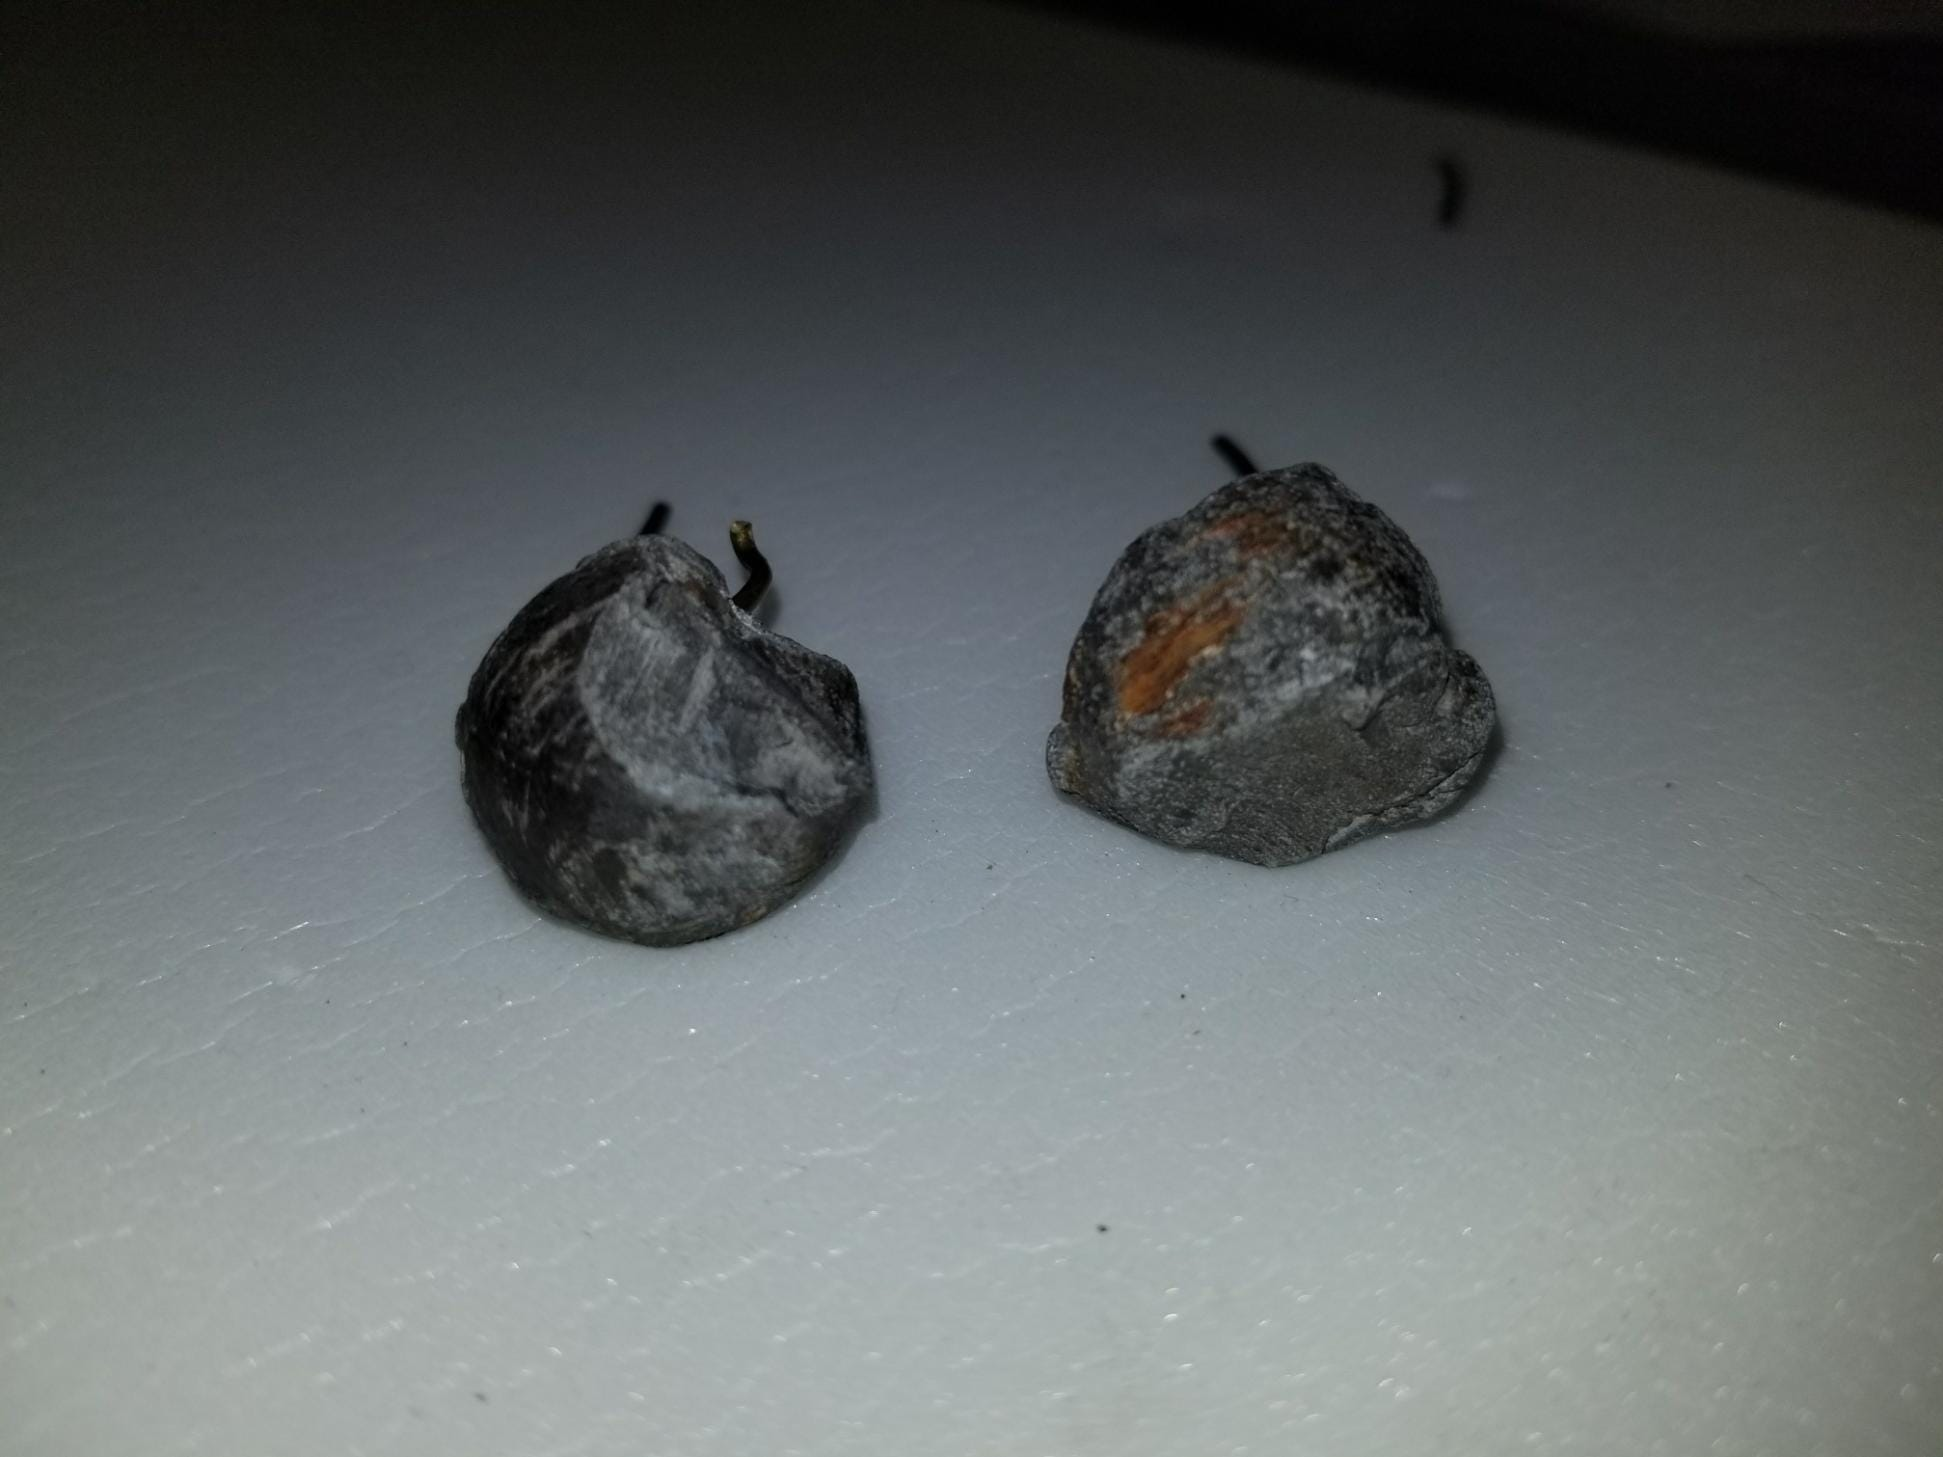 Local sleuth identifies sole Boston Massacre artifacts: 2 musket balls fired by British